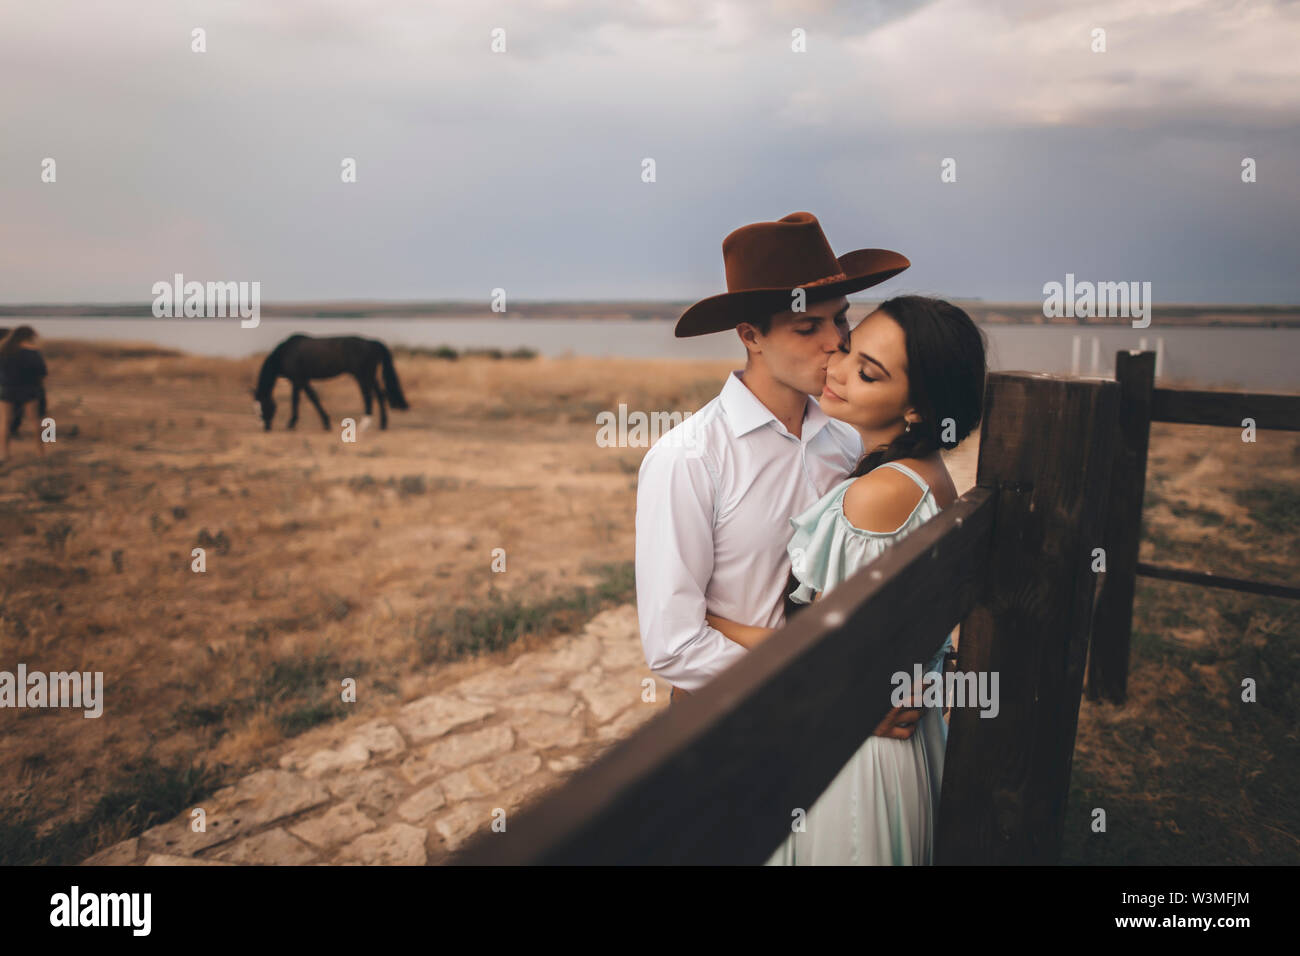 Young couple embracing in field by horses - Stock Image